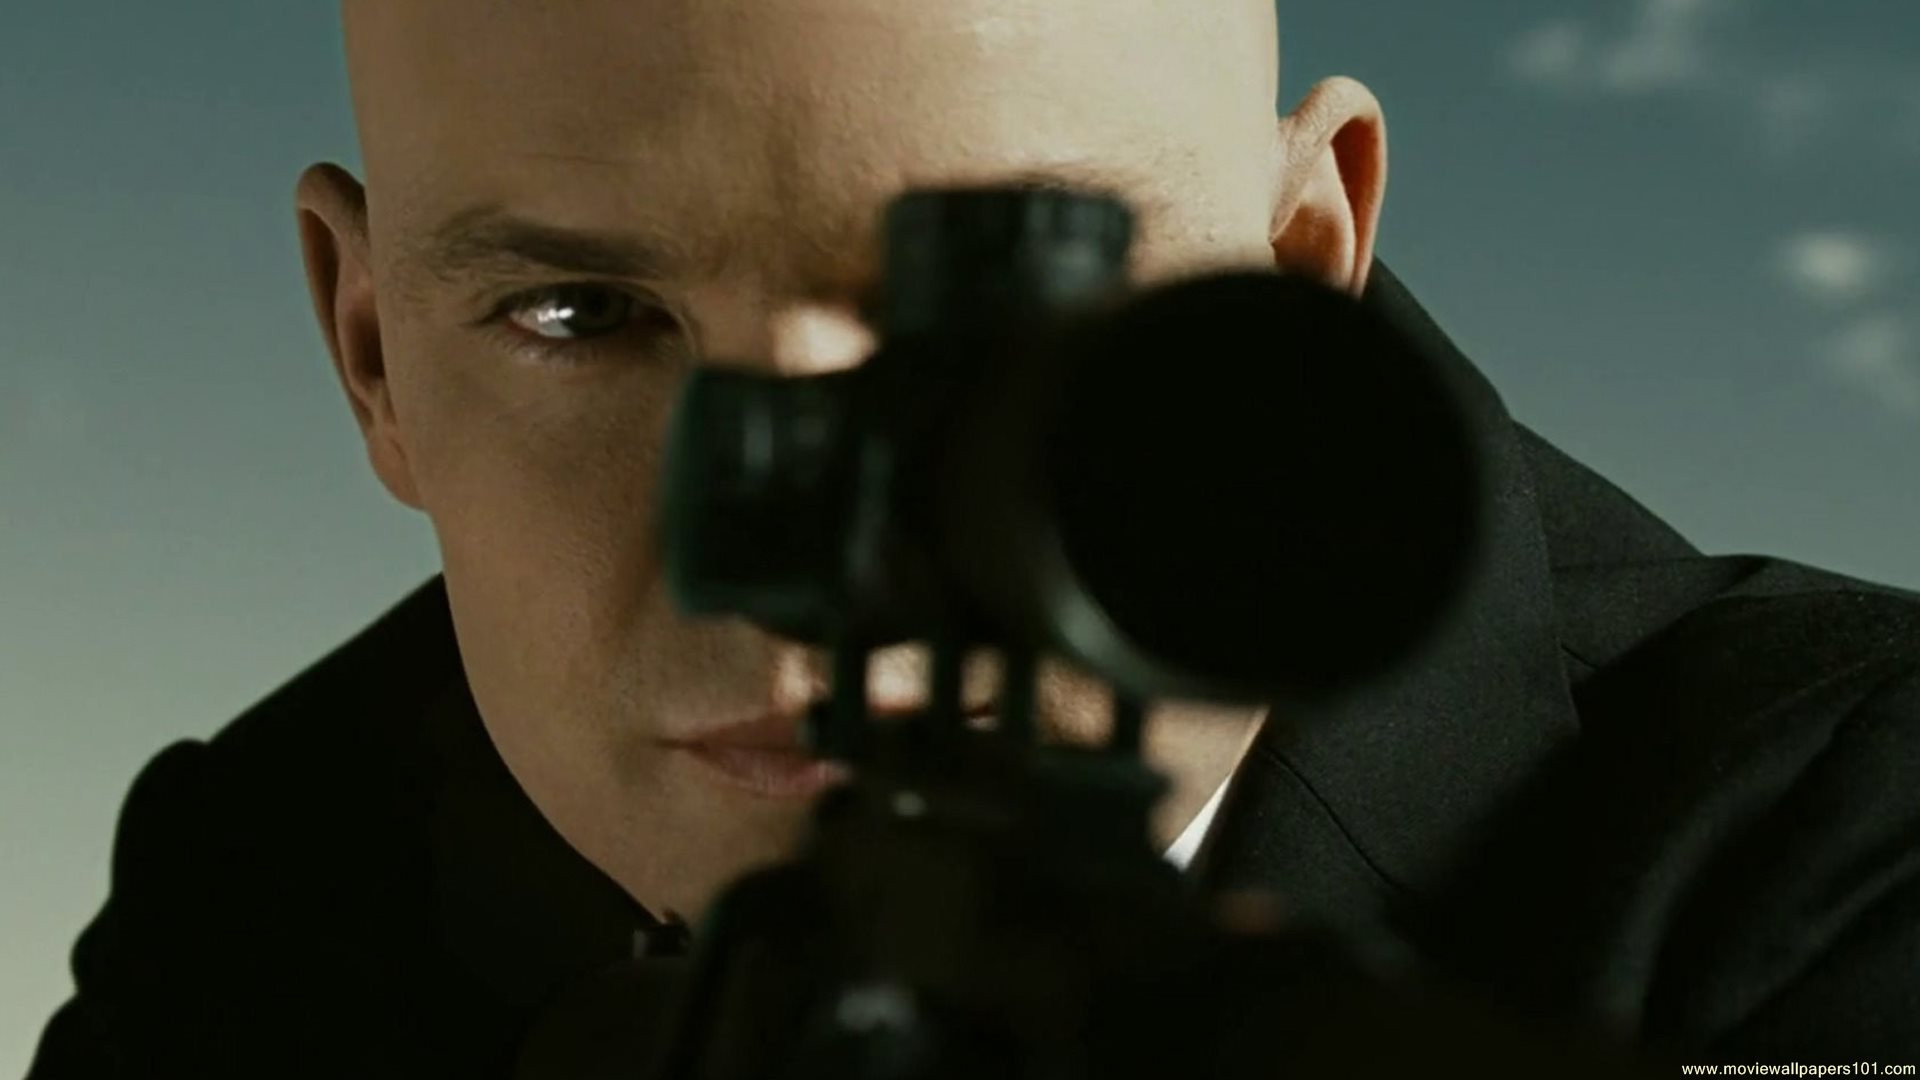 Free Download Download Hitman Agent 47 2015 Movie Hd Wallpaper Search More 1920x1080 For Your Desktop Mobile Tablet Explore 48 Hitman 2016 Wallpaper Hitman Absolution Wallpaper Hitman Wallpaper For Computer Hitman Wallpaper Full Hd